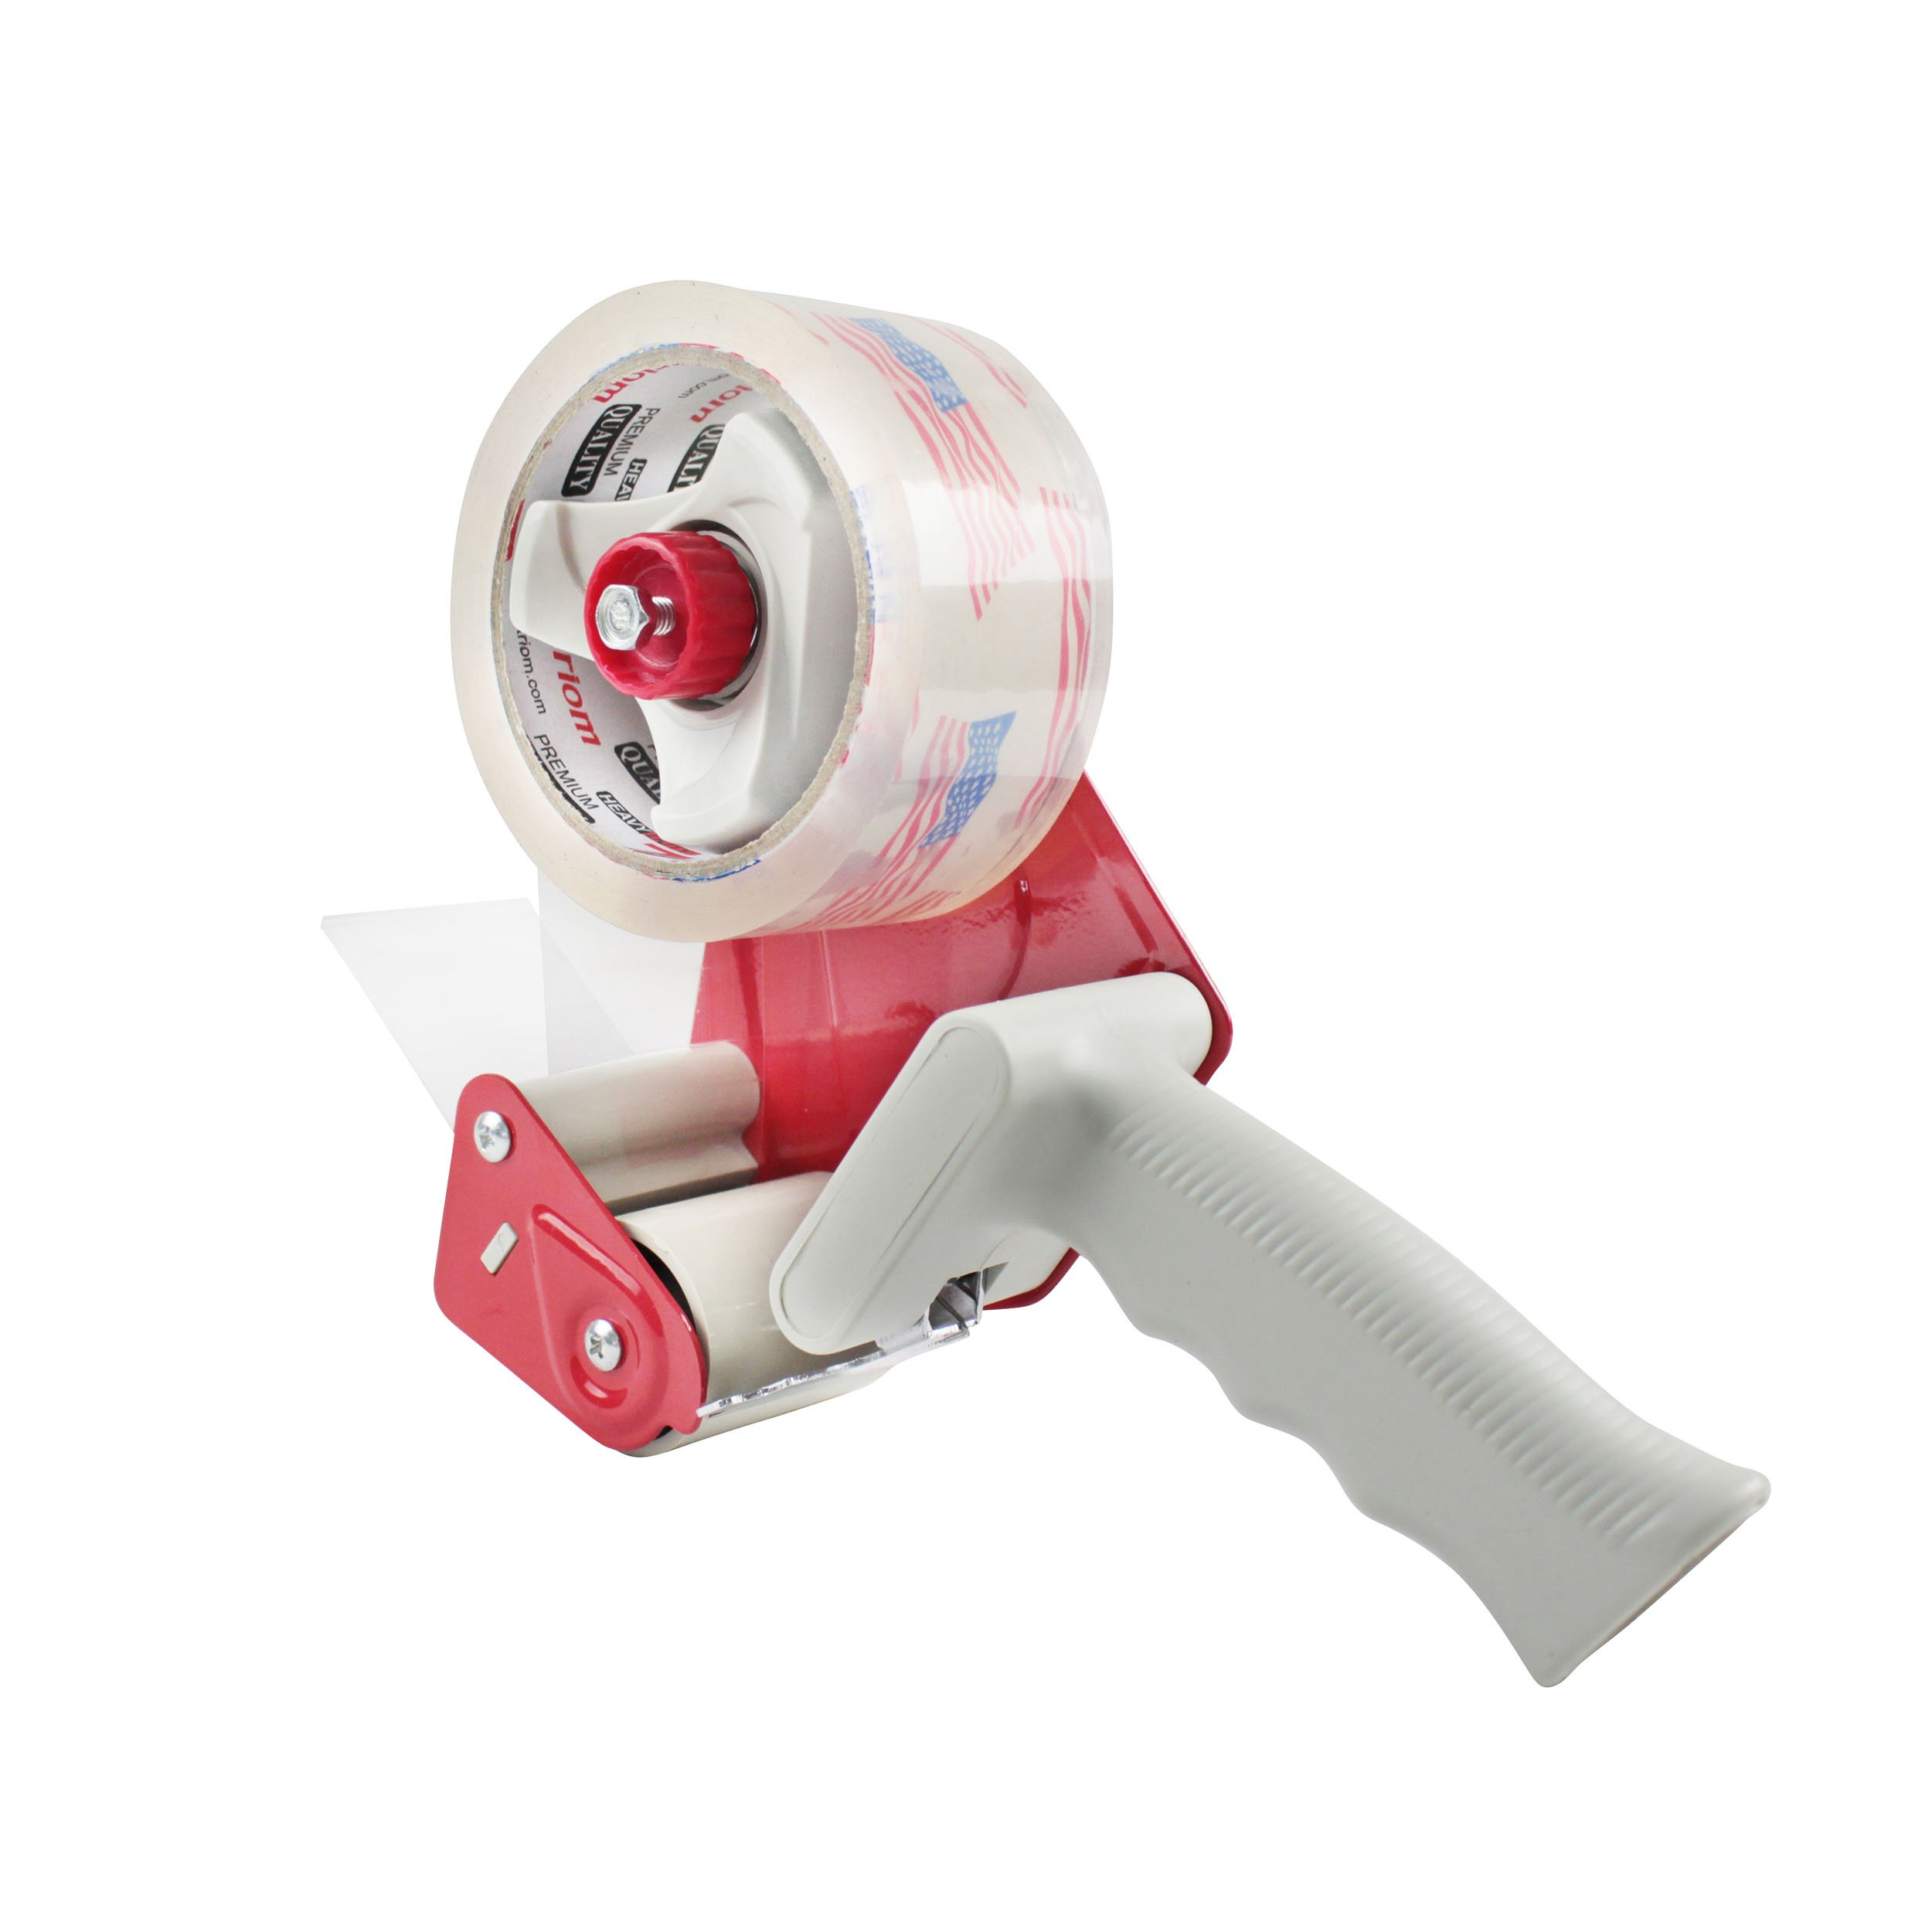 Tape Gun Standard Handheld Dispenser with a 55 Yard Packing Roll Included for Box Sealing and Packaging